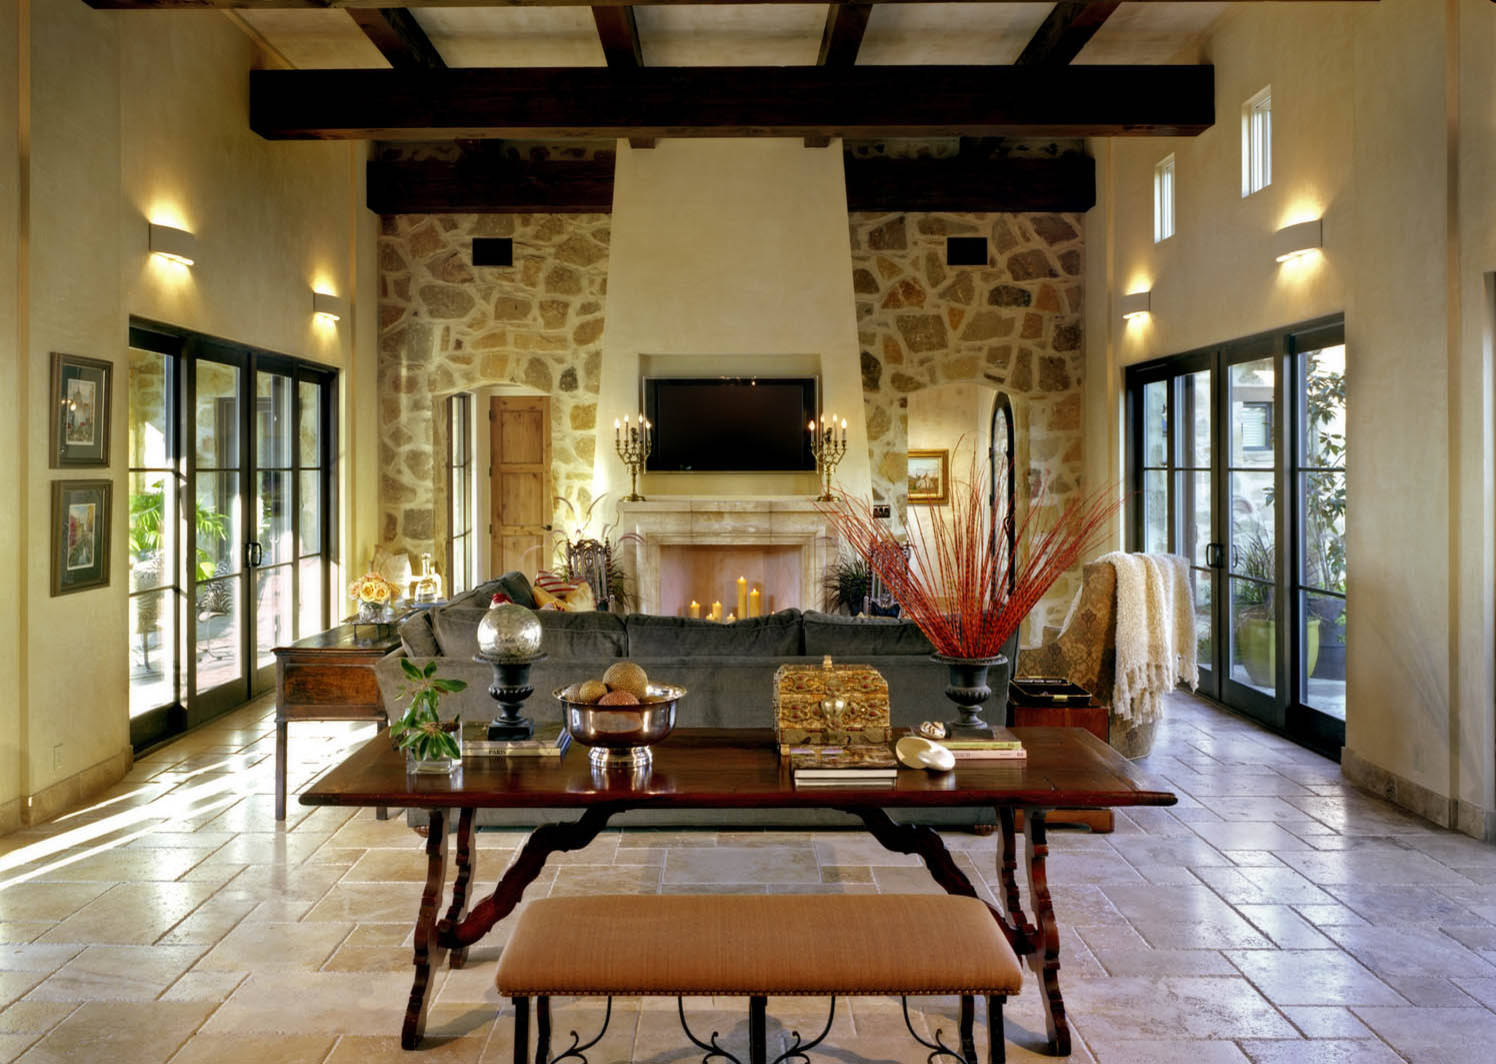 house design: travertine tile floor with rustic table and living